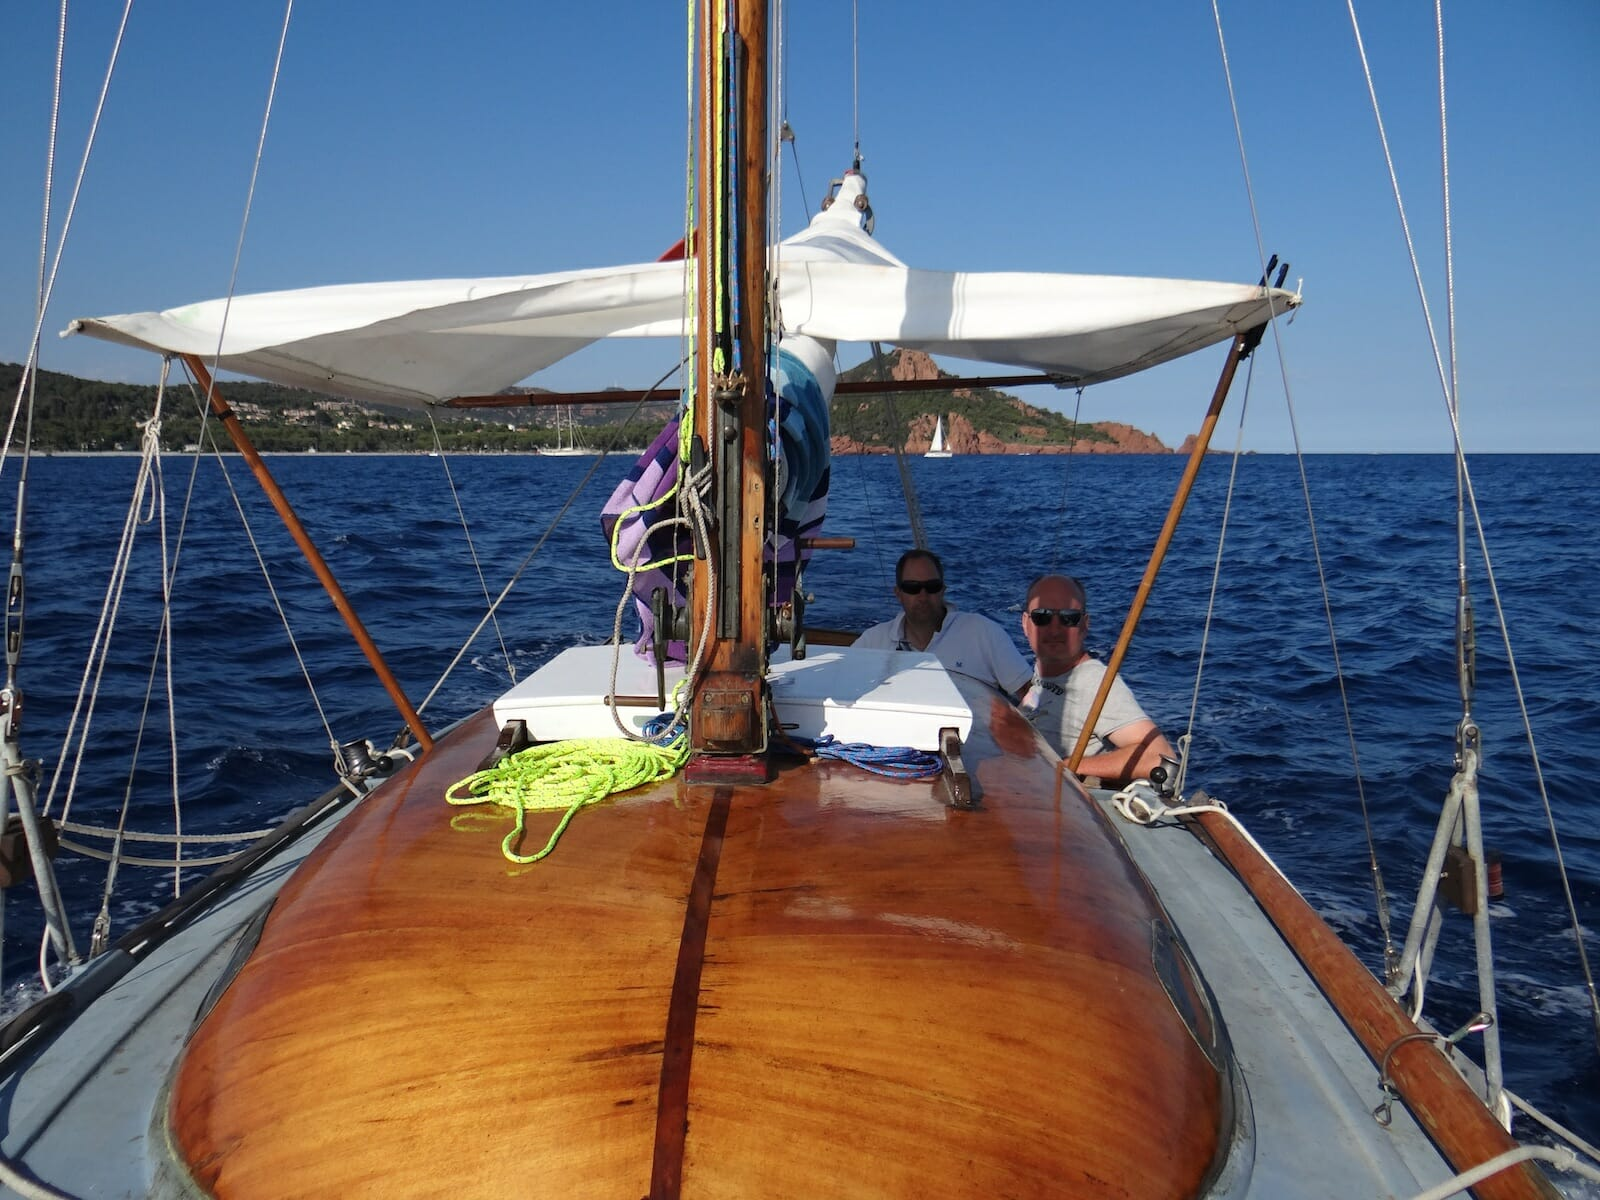 06 Sep - Past Agay to St Tropez